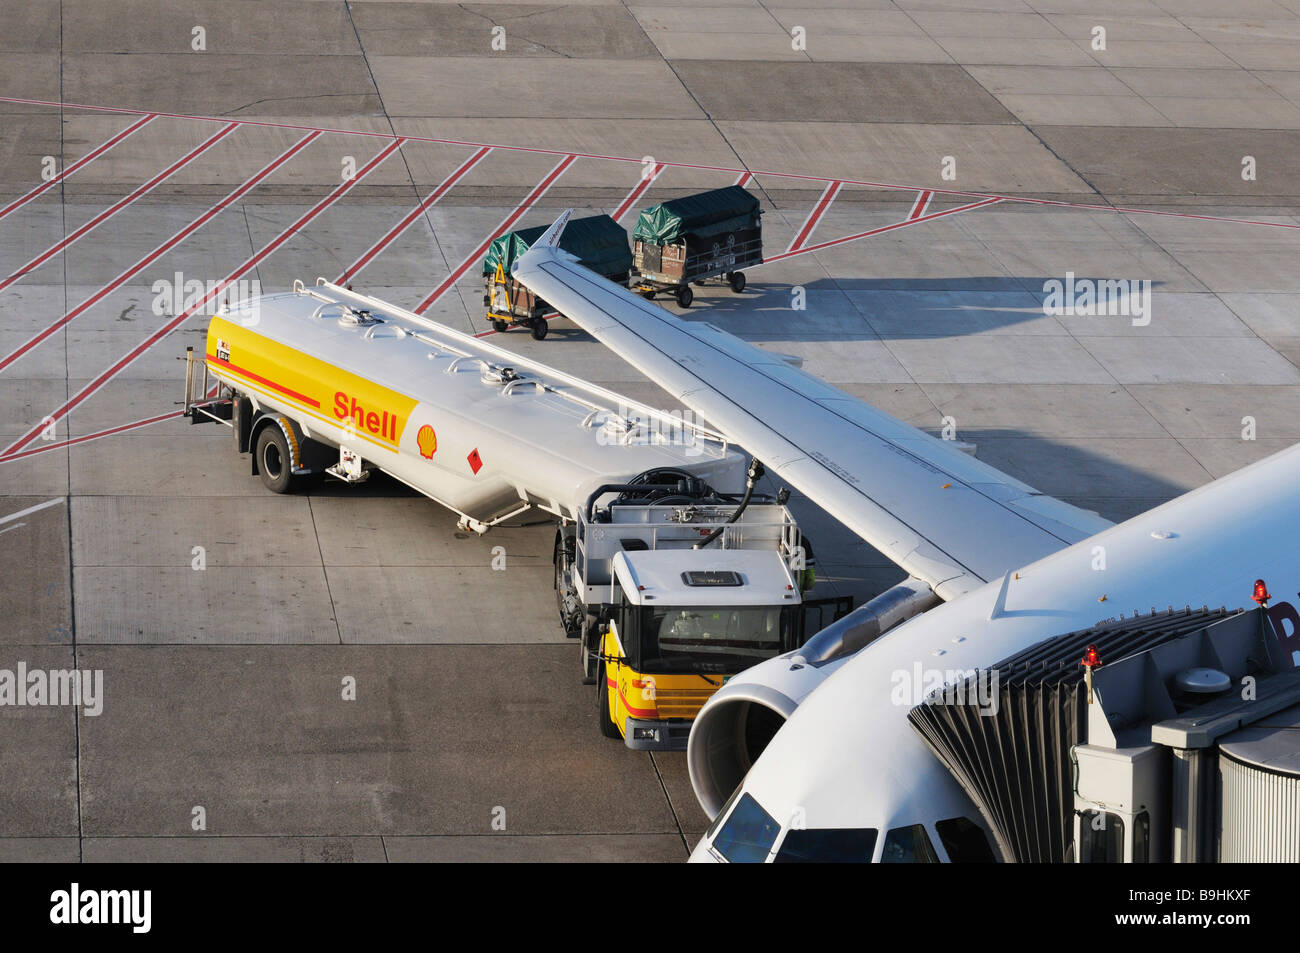 Fuelling a commercial aircraft, Duesseldorf International Airport, North Rhine-Westphalia, Germany, Europe - Stock Image